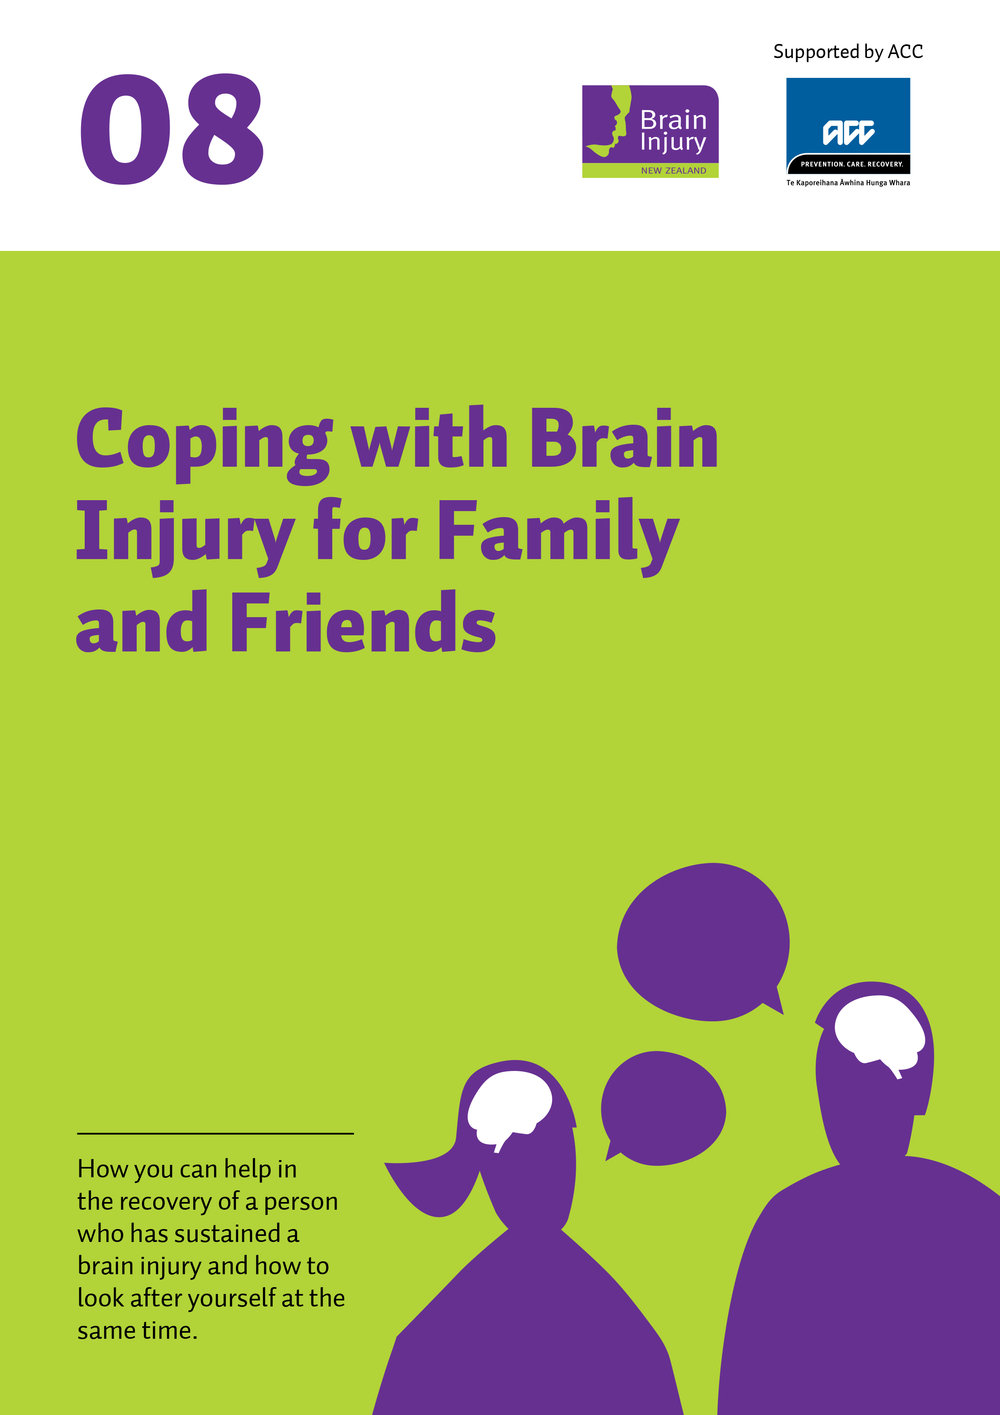 08 Coping with brain injury for family and friends